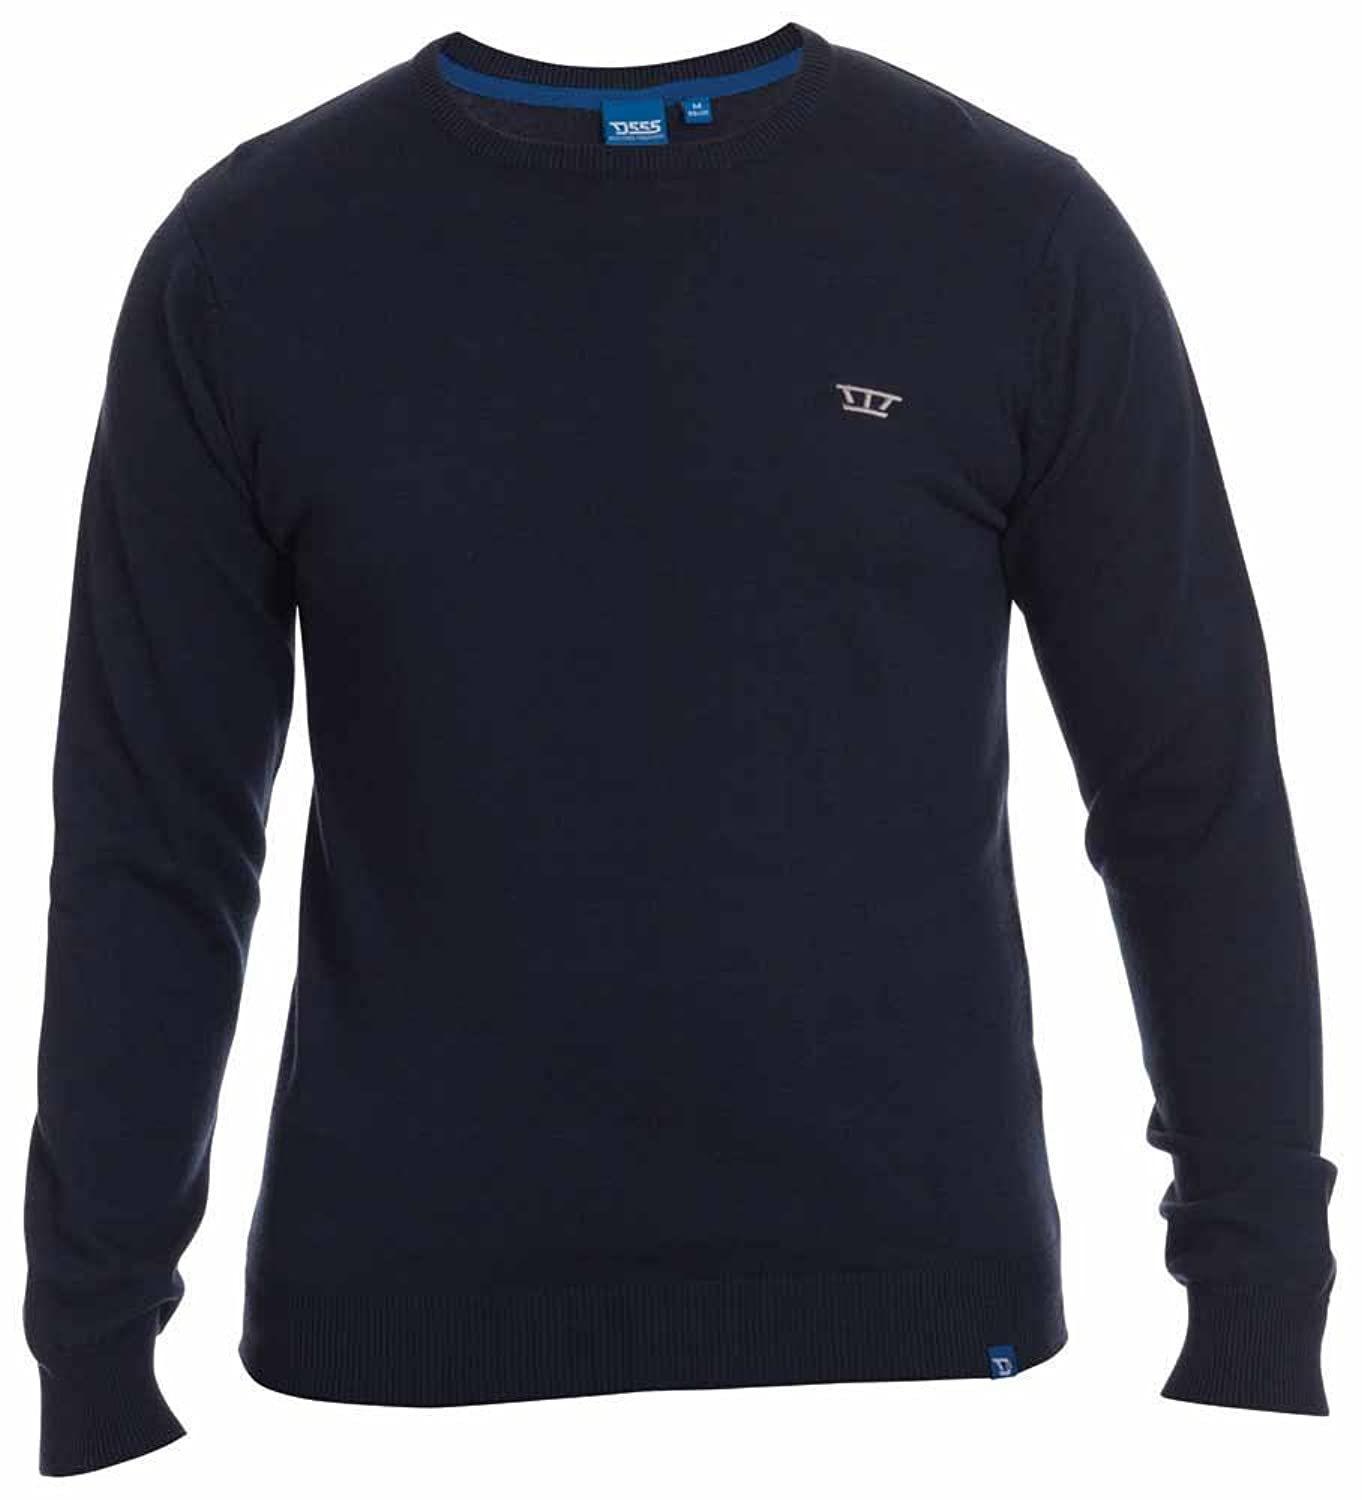 D555 By Duke Kingsize Big Mens Navy Crew Neck Sweater Jumper, Navy (2XL-8XL)